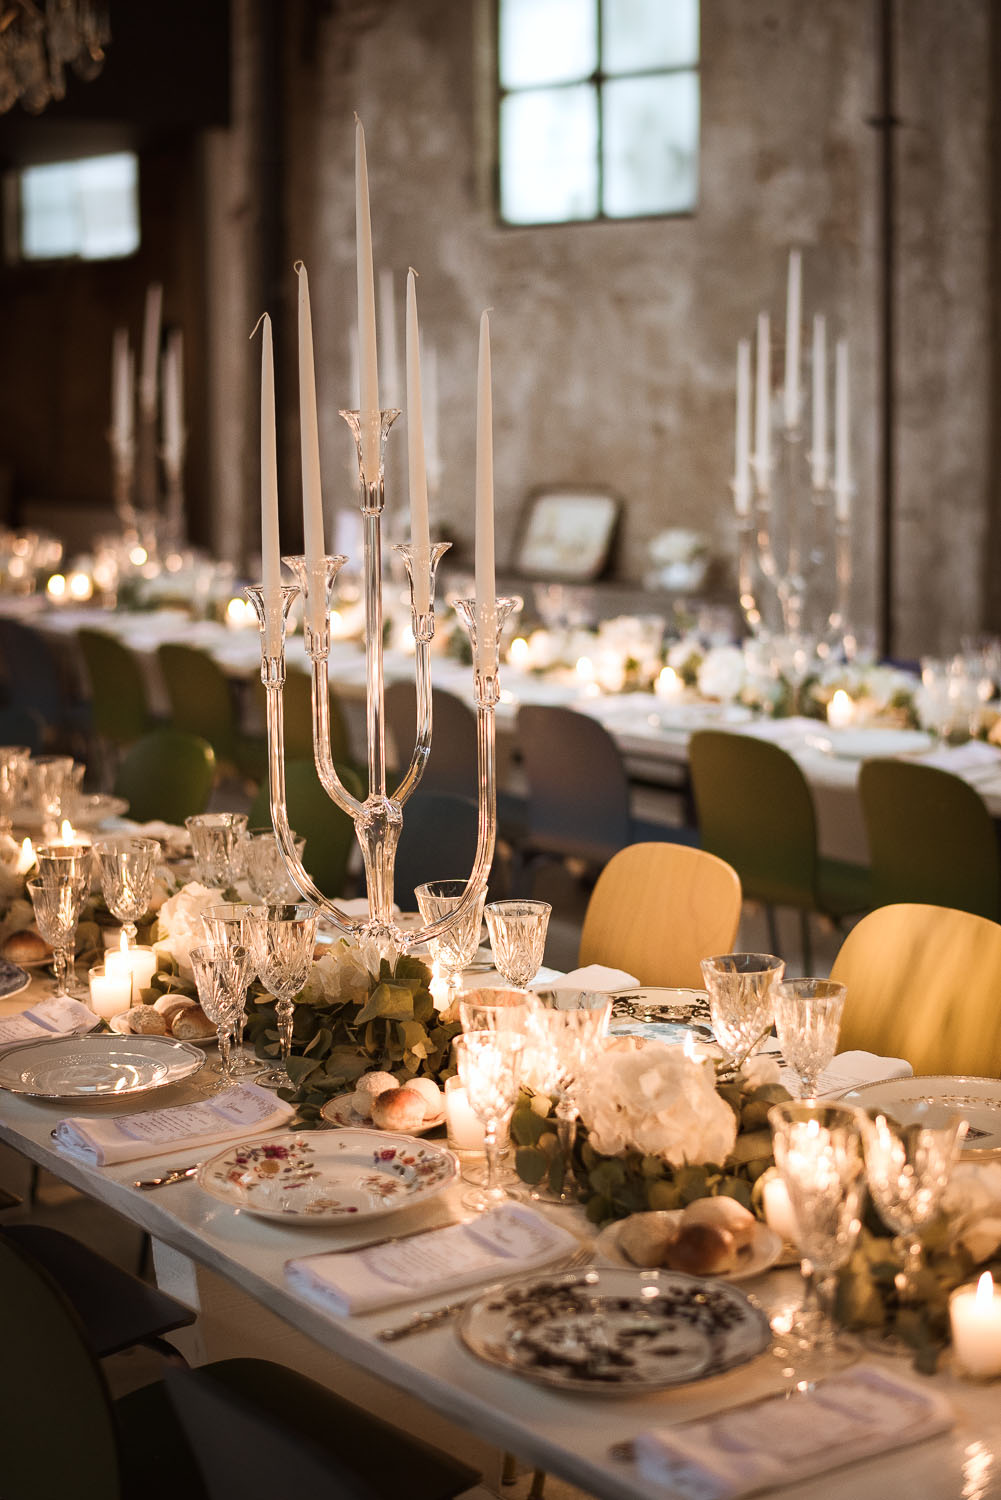 Matrimonio Shabby Chic Lombardia : Un matrimonio incredibilmente chic a milano wedding